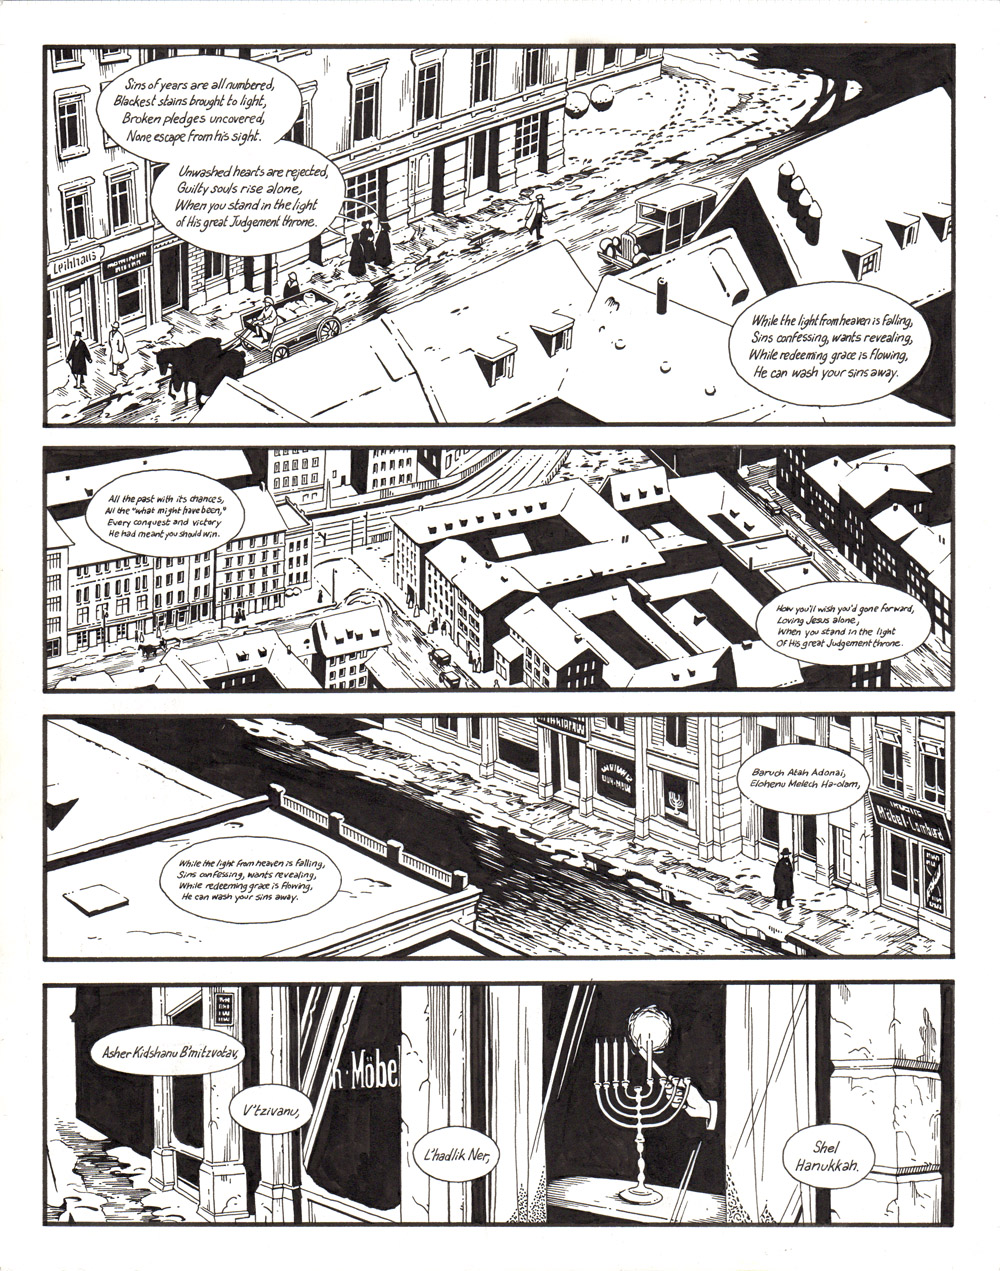 Berlin: Book 1 - Page 120